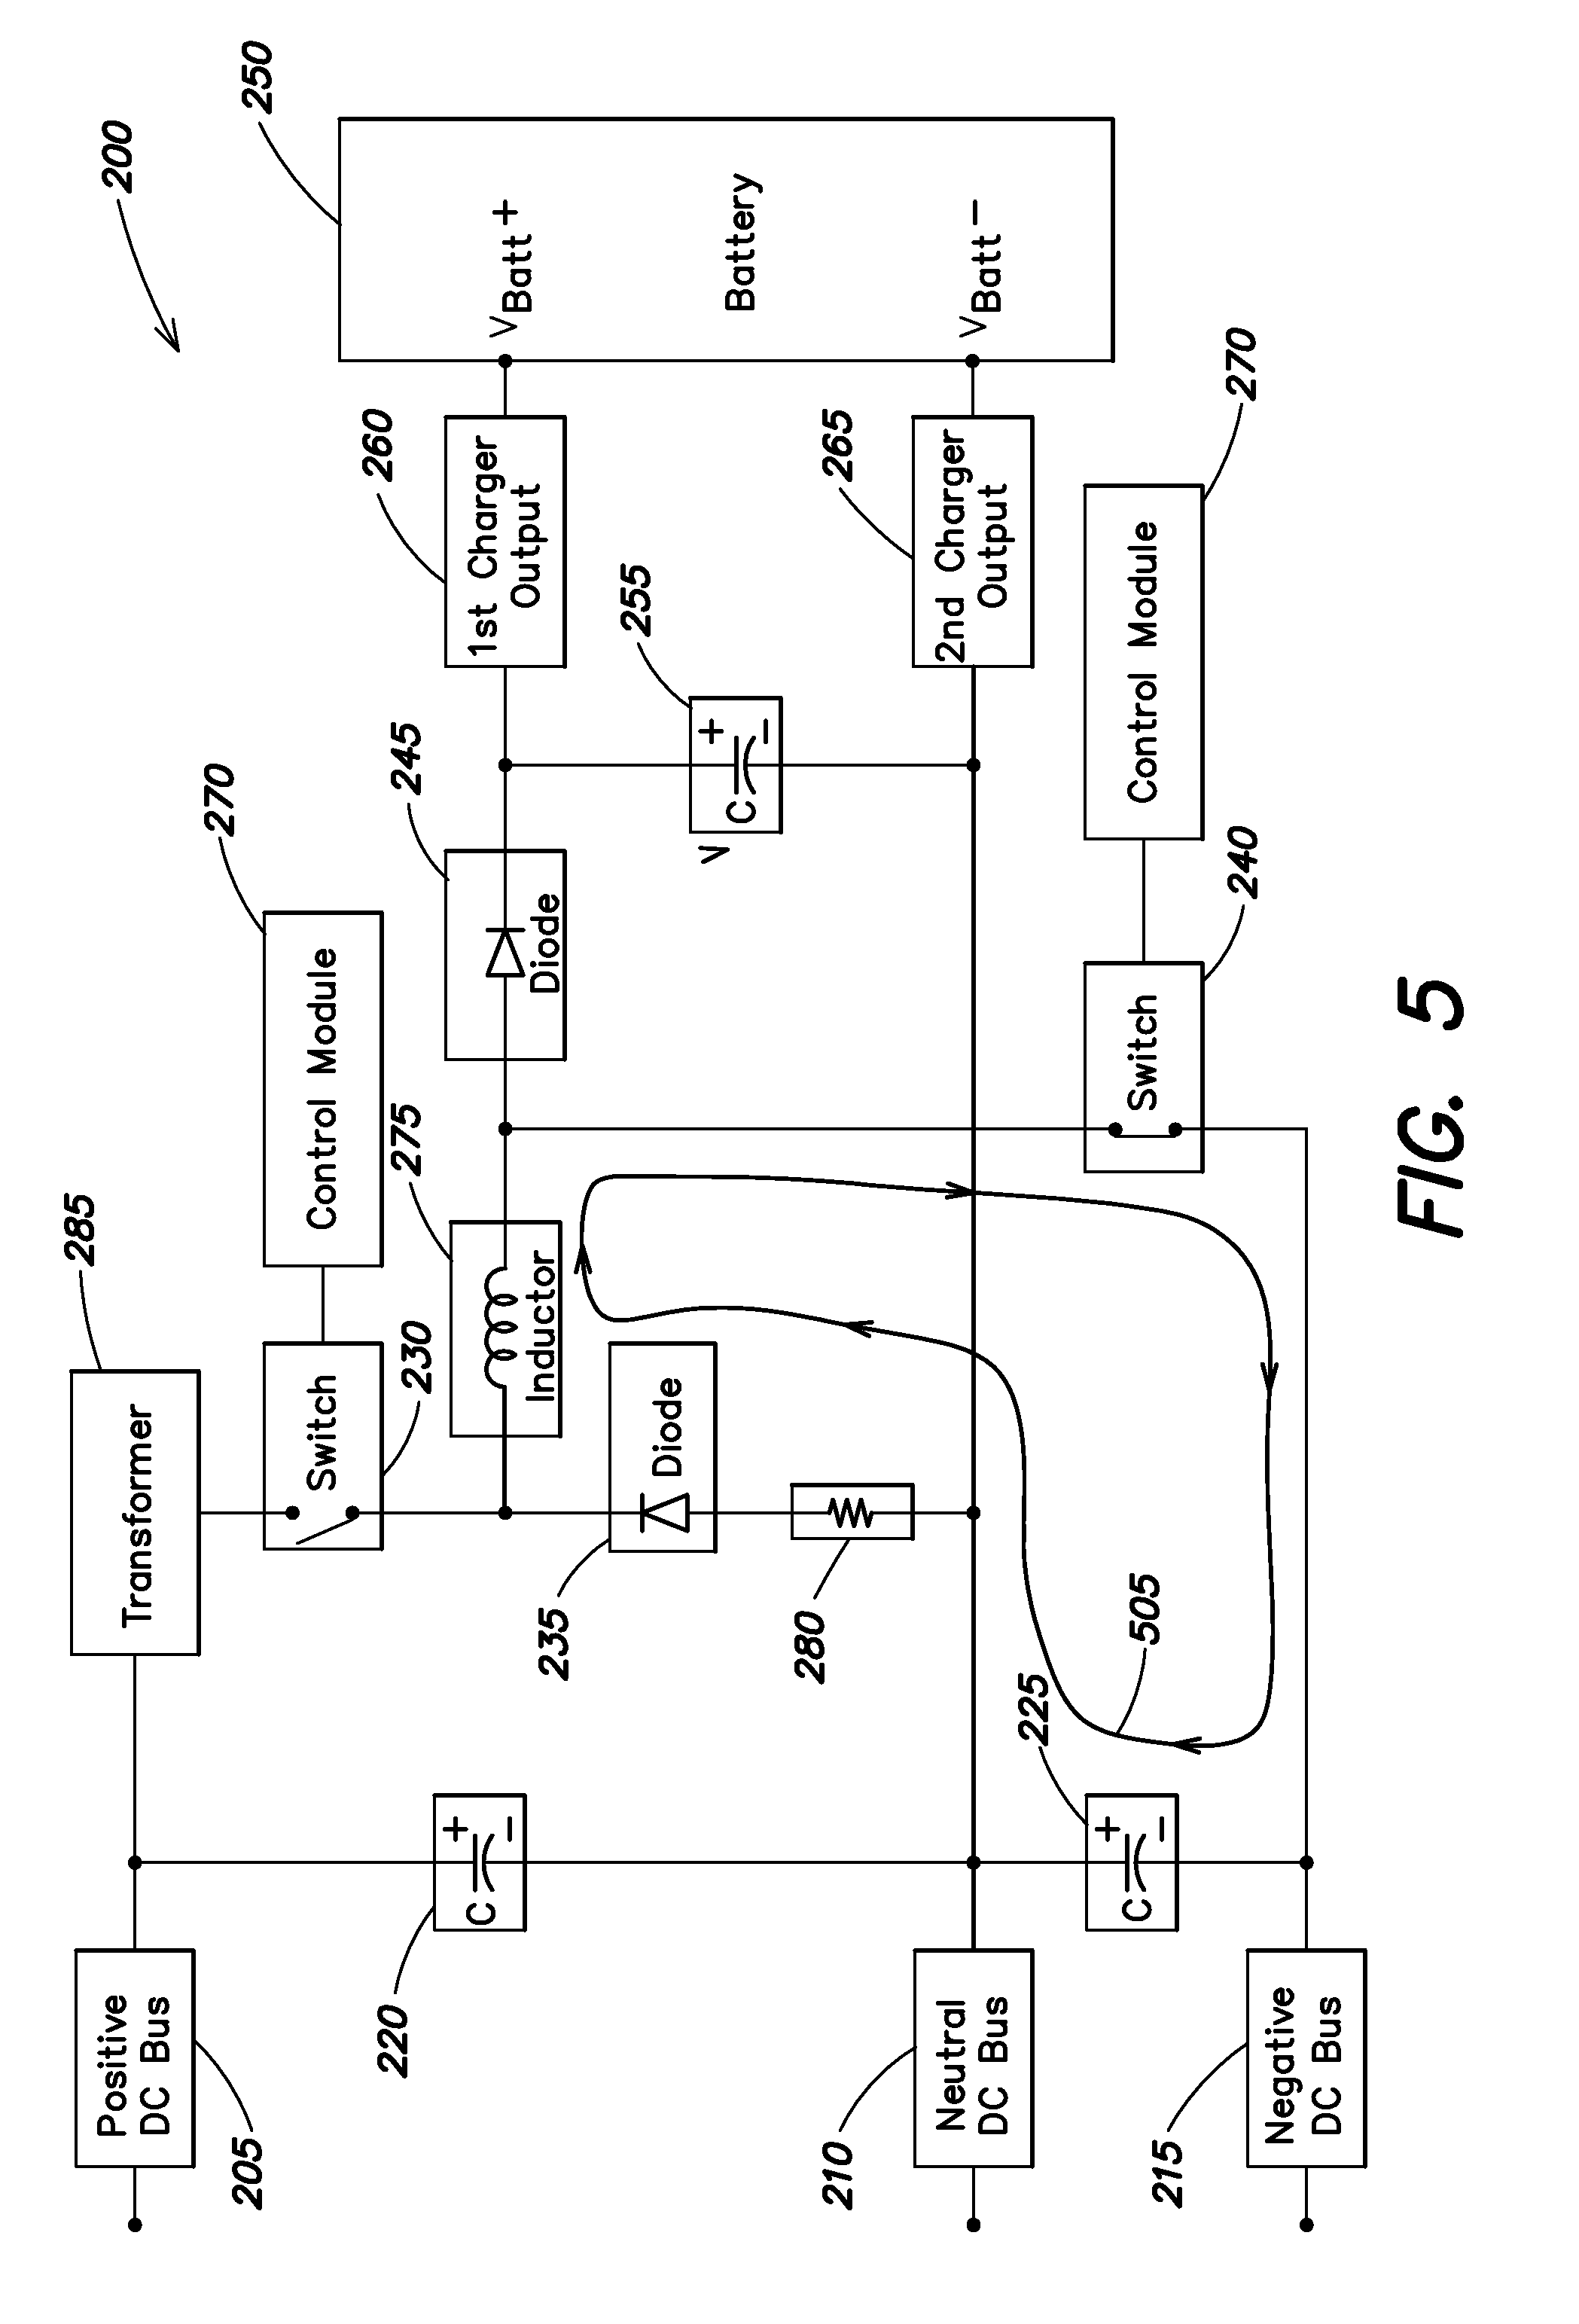 Patent Us20100270977 Non Isolated Charger With Bi Polar Inputs Nonisolated Switching Power Supply Circuit Diagram Drawing